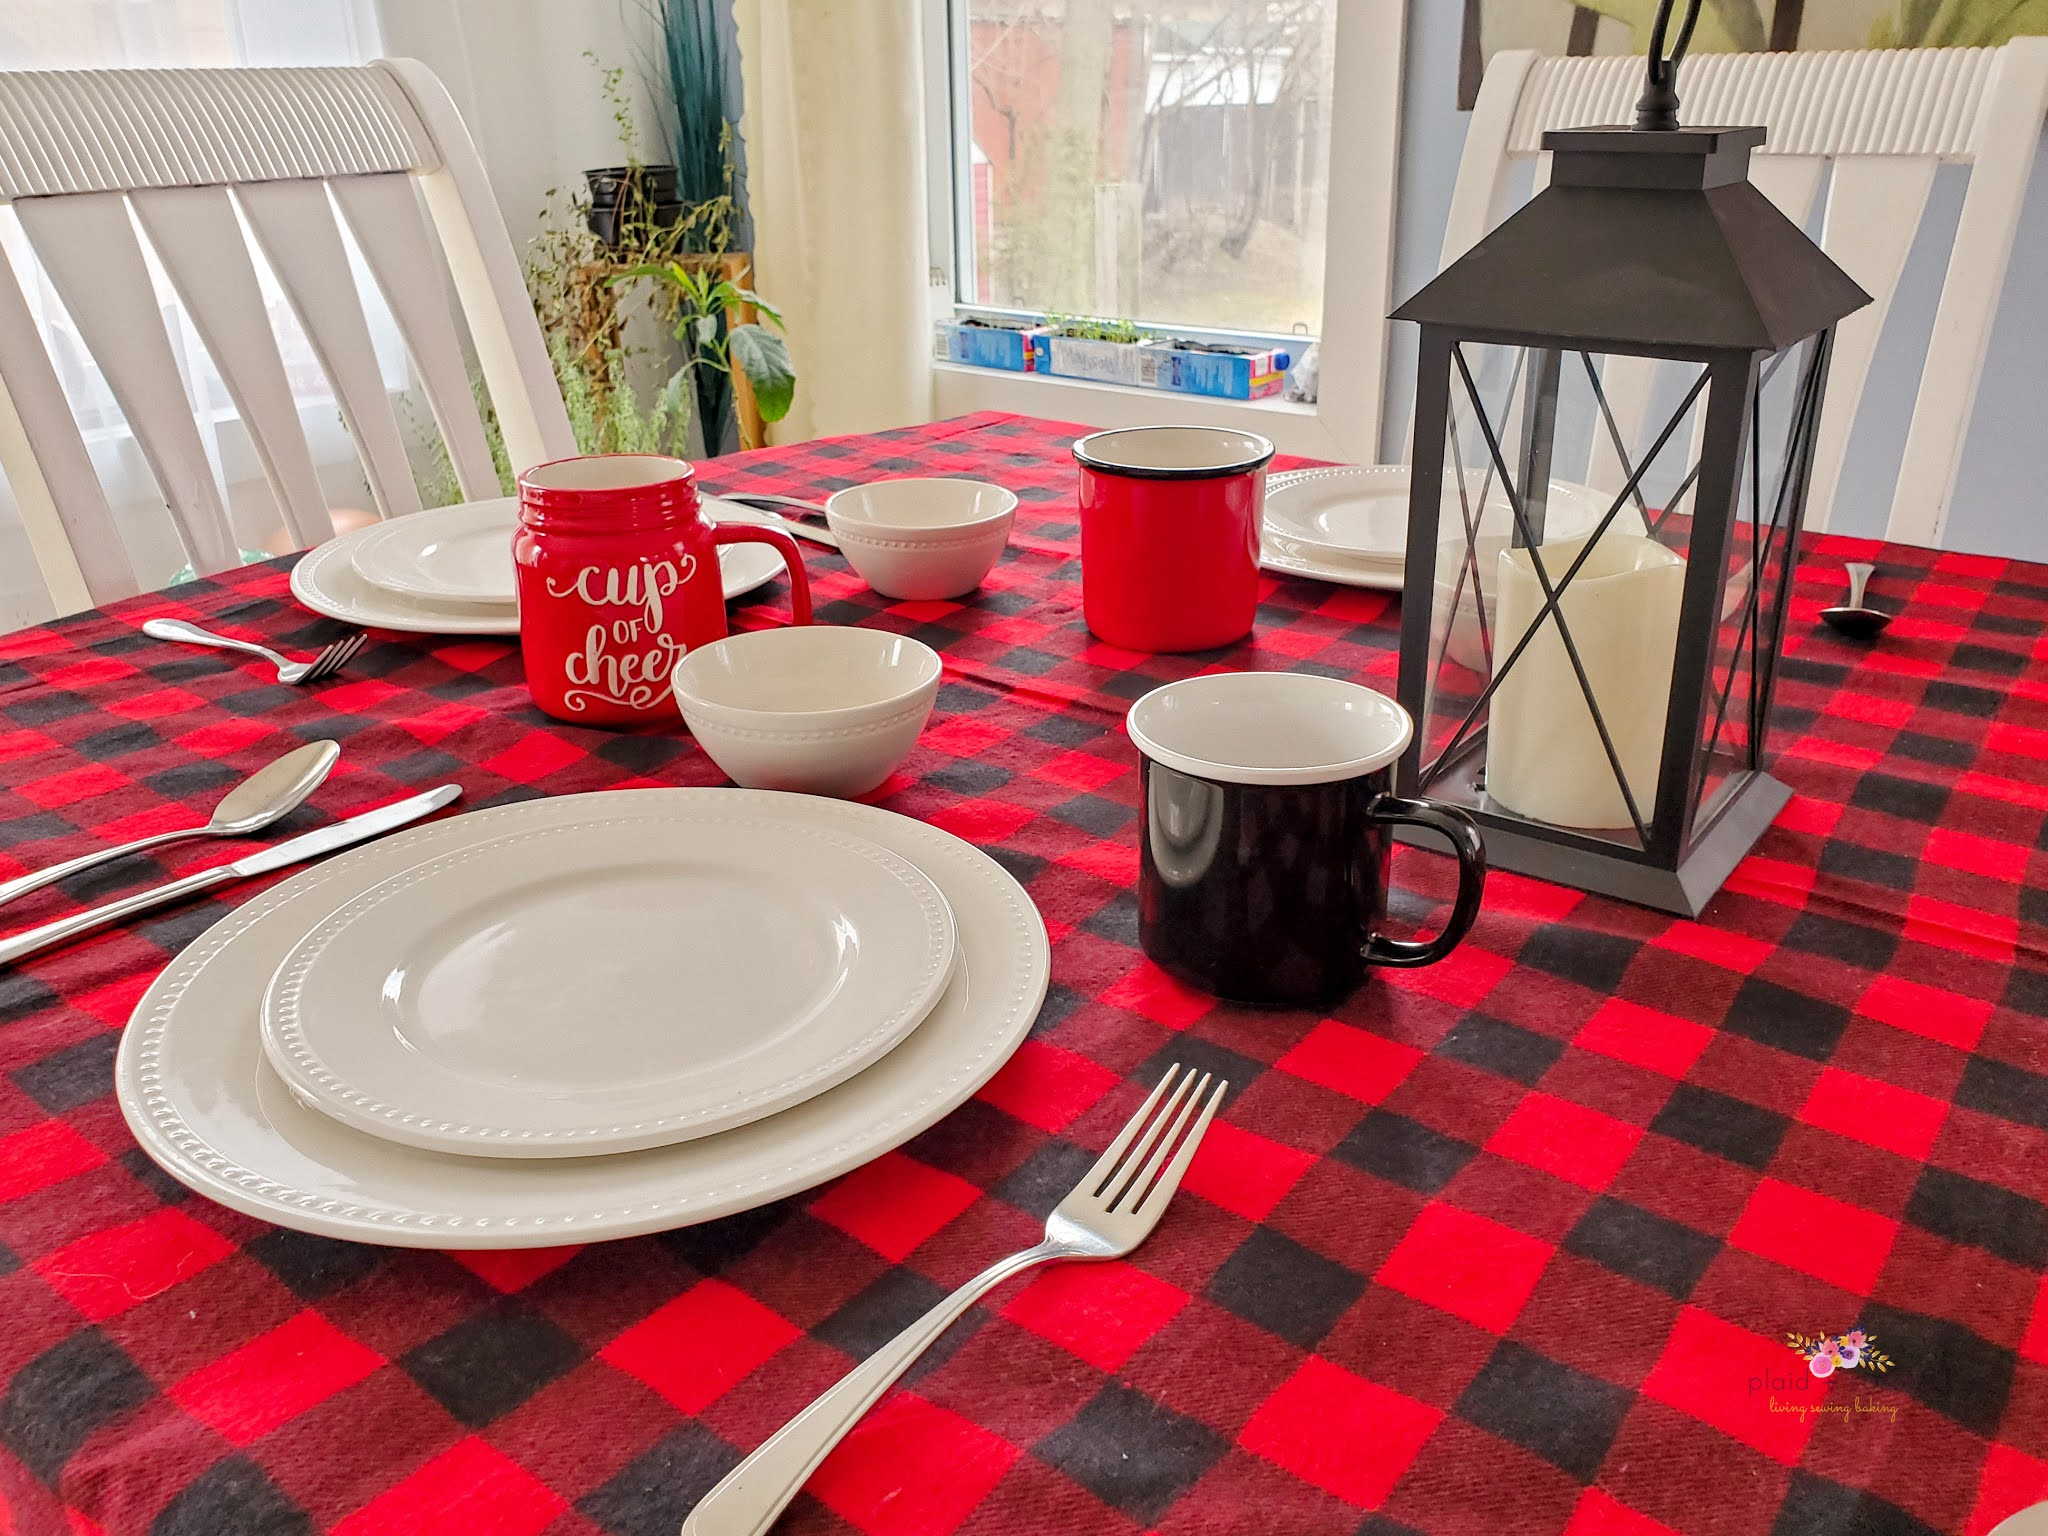 How To Have a Cabane A Sucre at Home by Plaid and Sugar